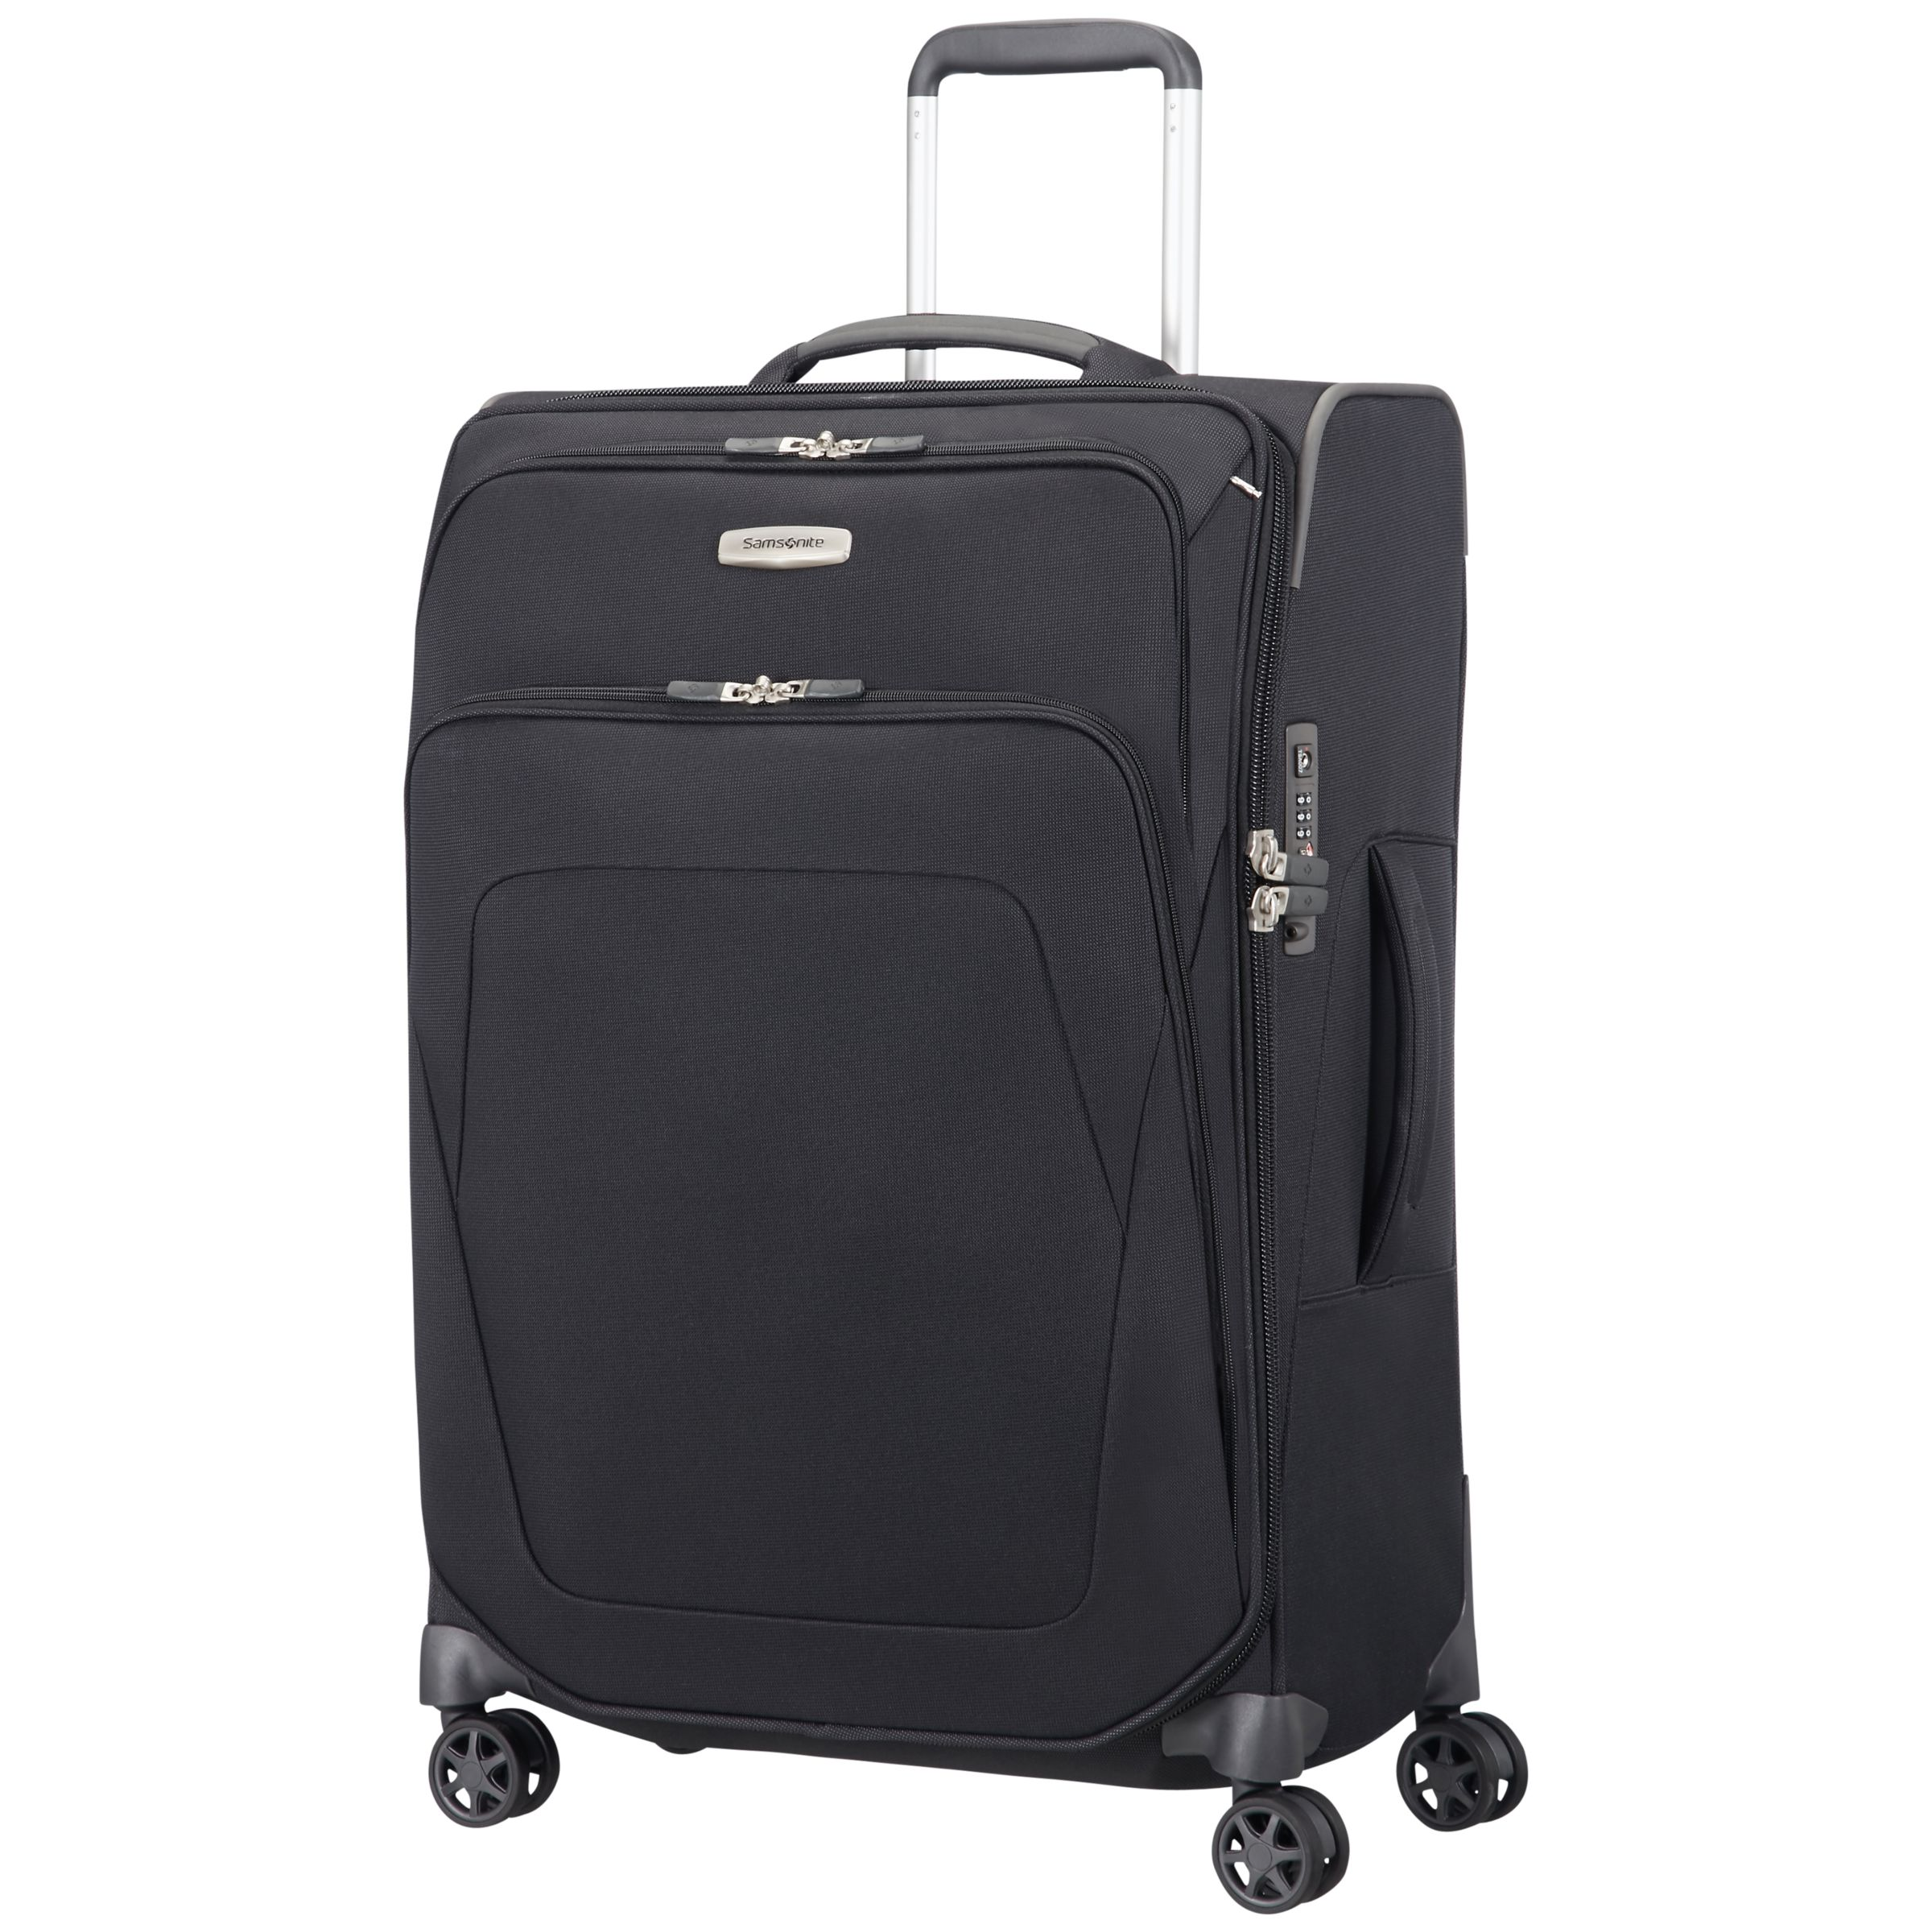 Samsonite Samsonite Spark SNG 67cm 4-Wheel Suitcase